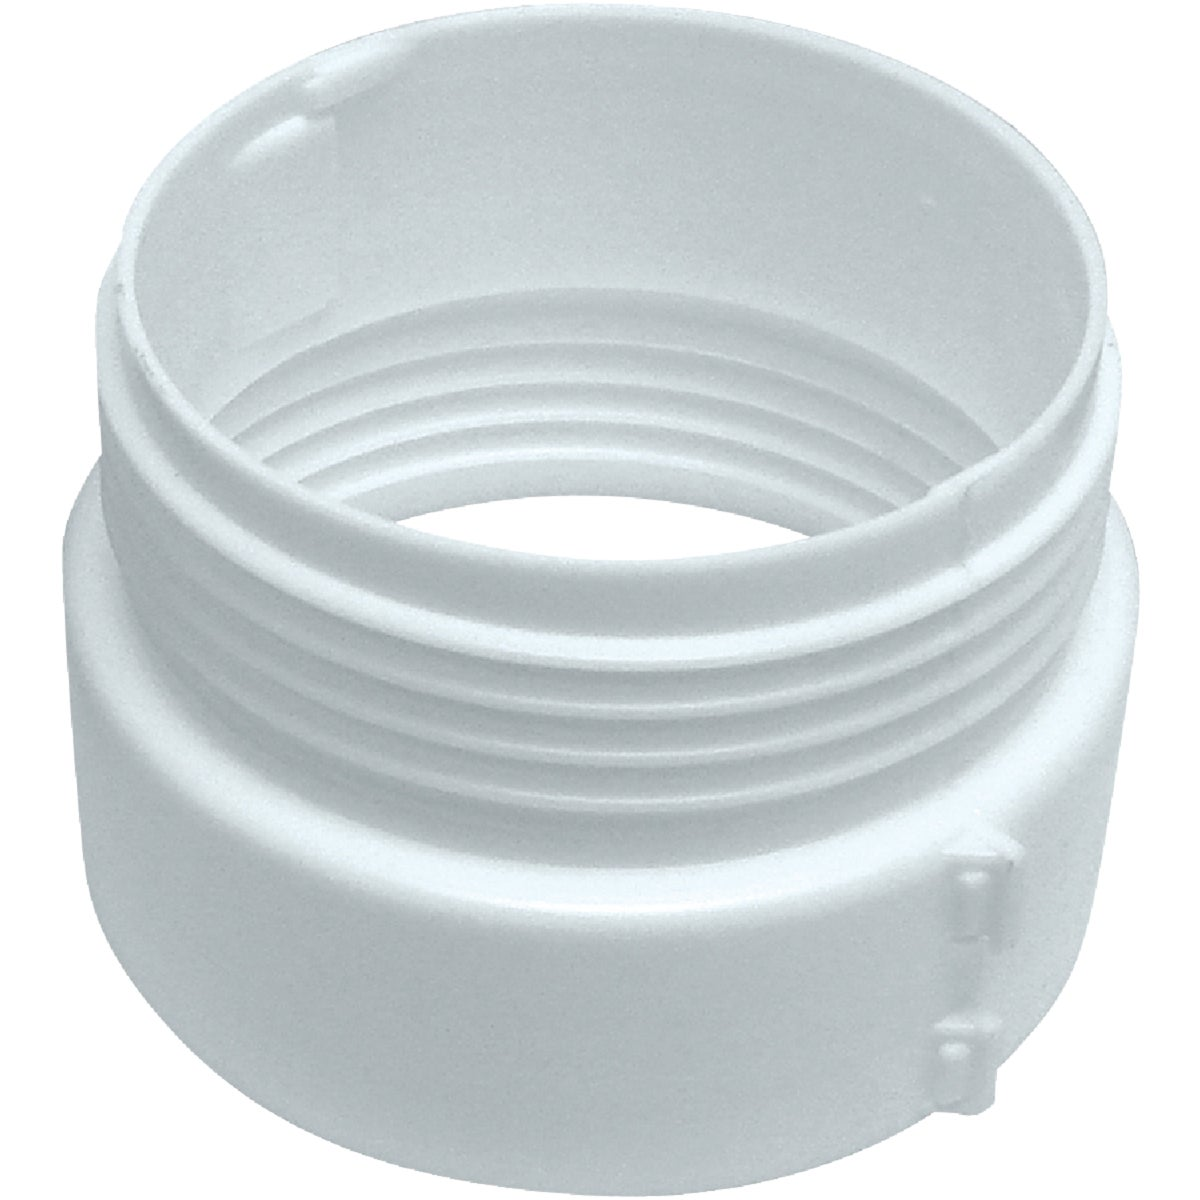 "4"" WHITE DUCT CONNECTOR - 236 by Lambro Industries"